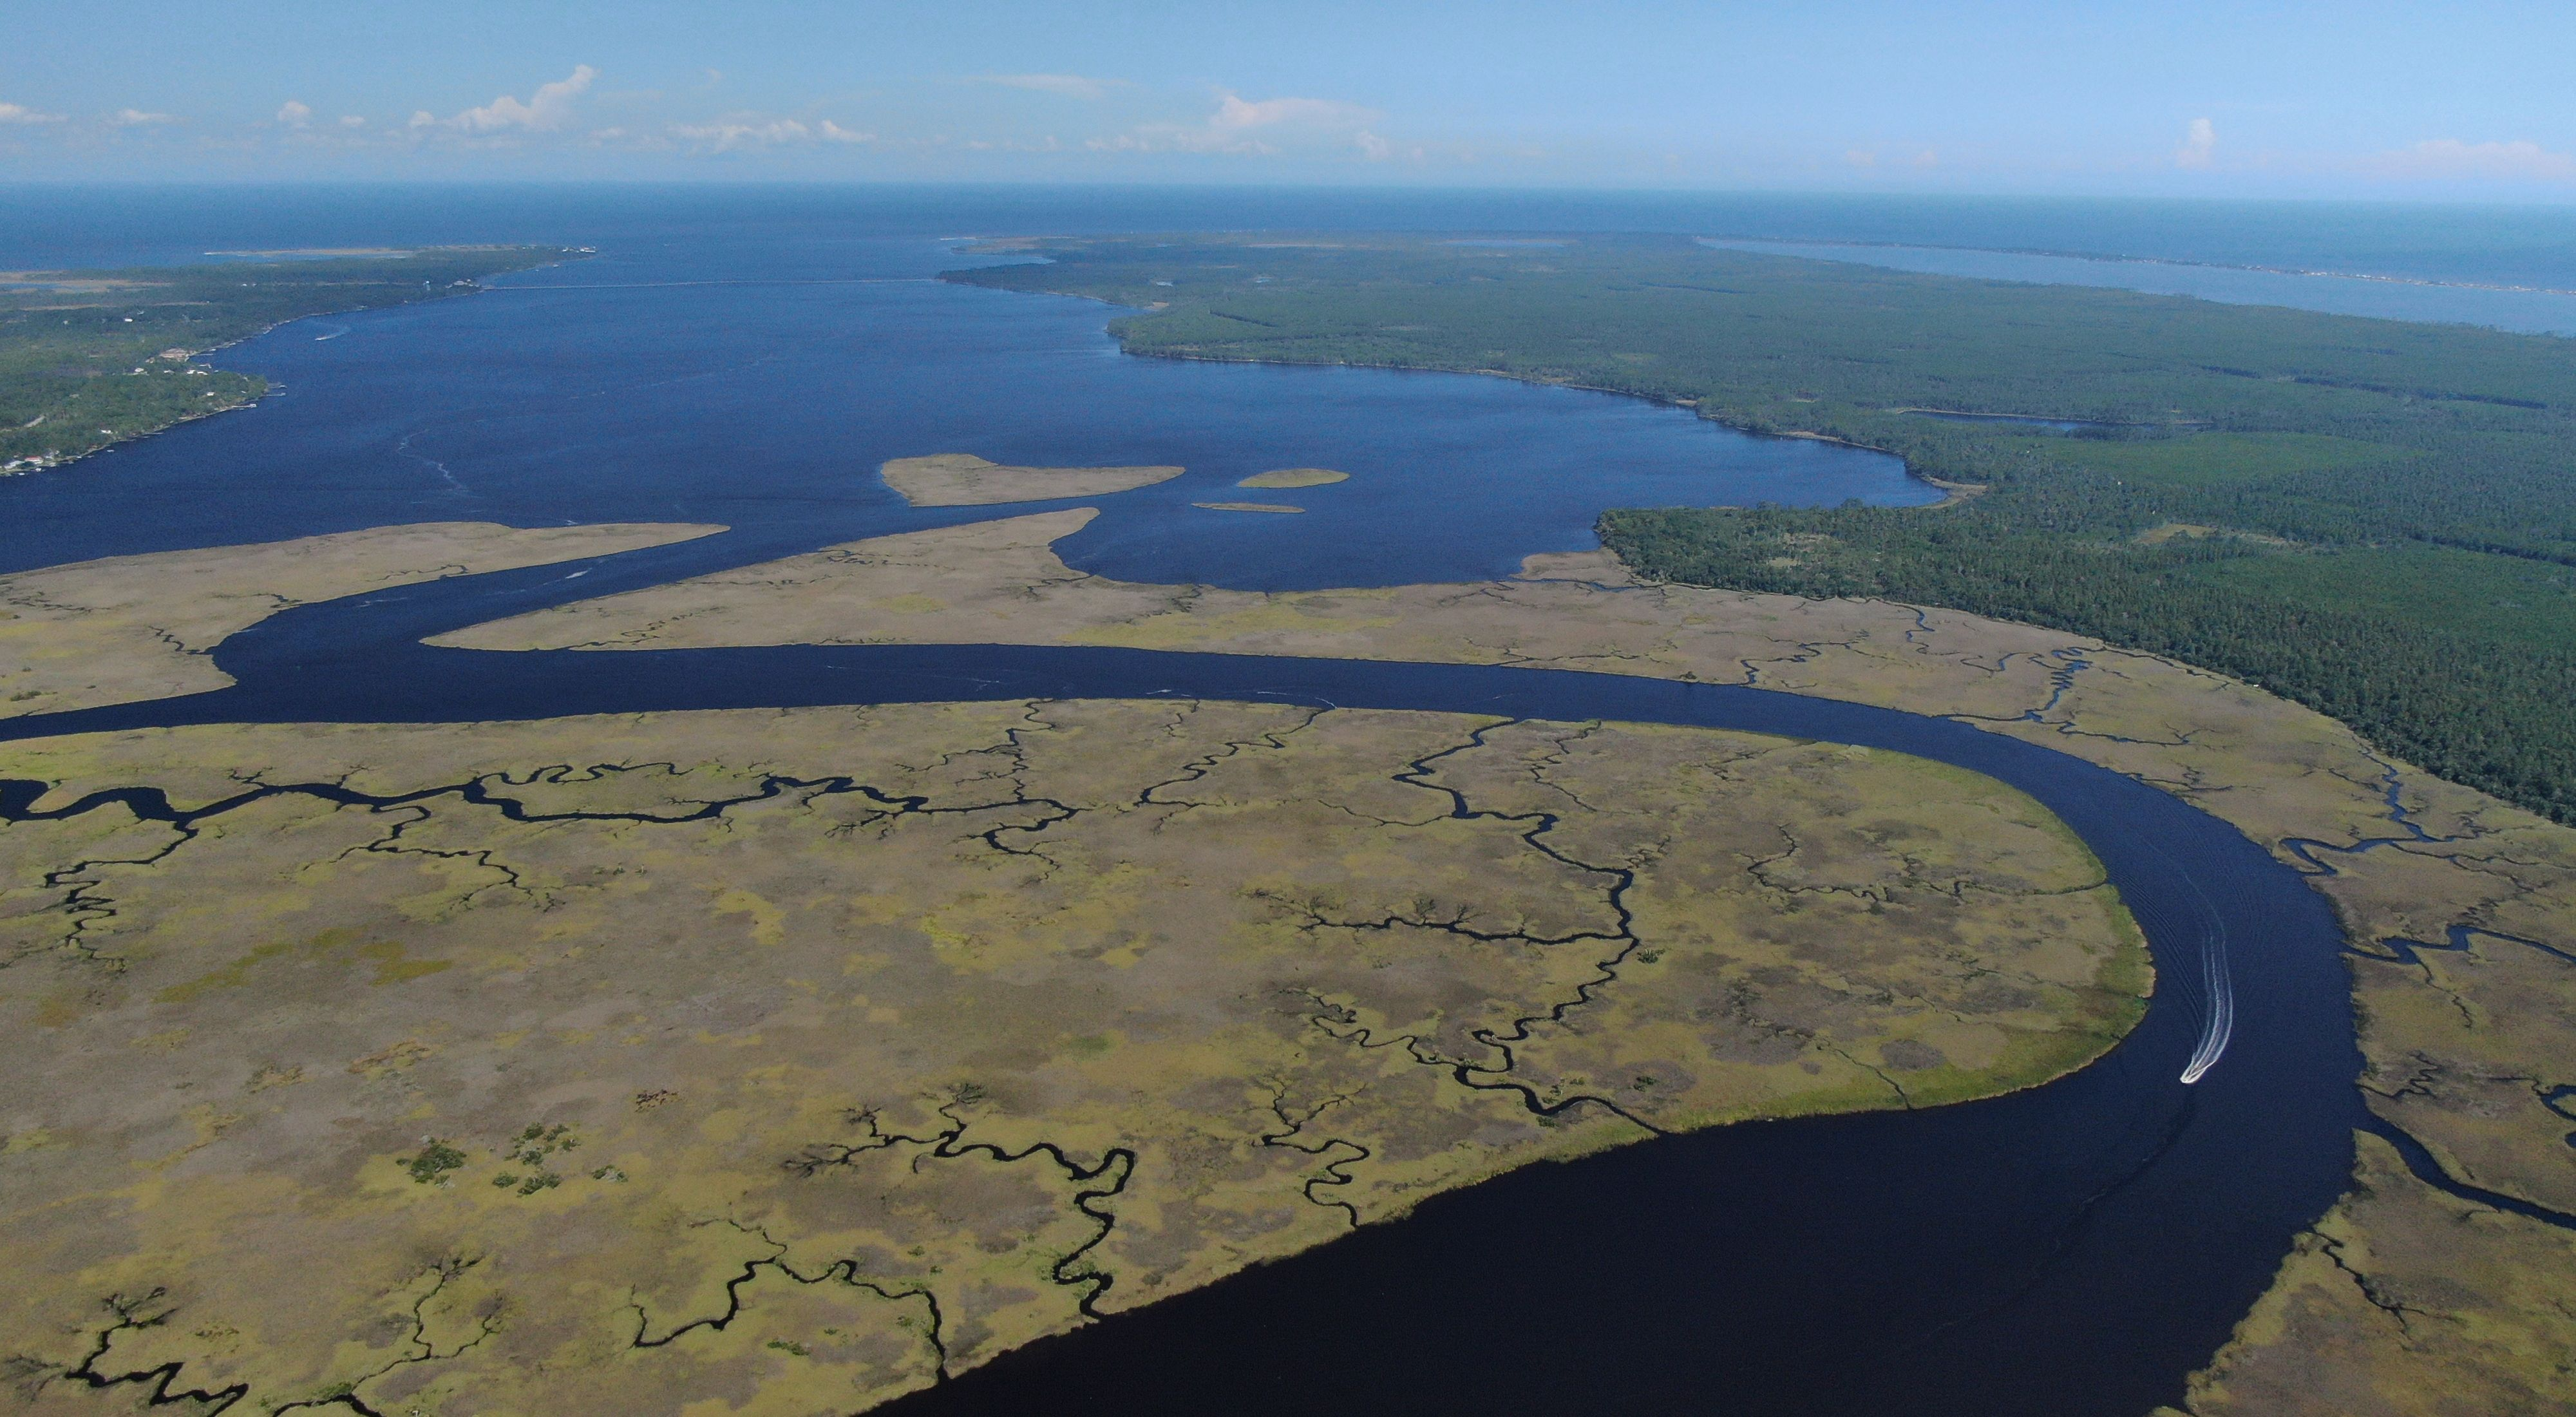 Aerial view of rivers and lakes at the Bluffs of St. Teresa in the panhandle region of Florida.